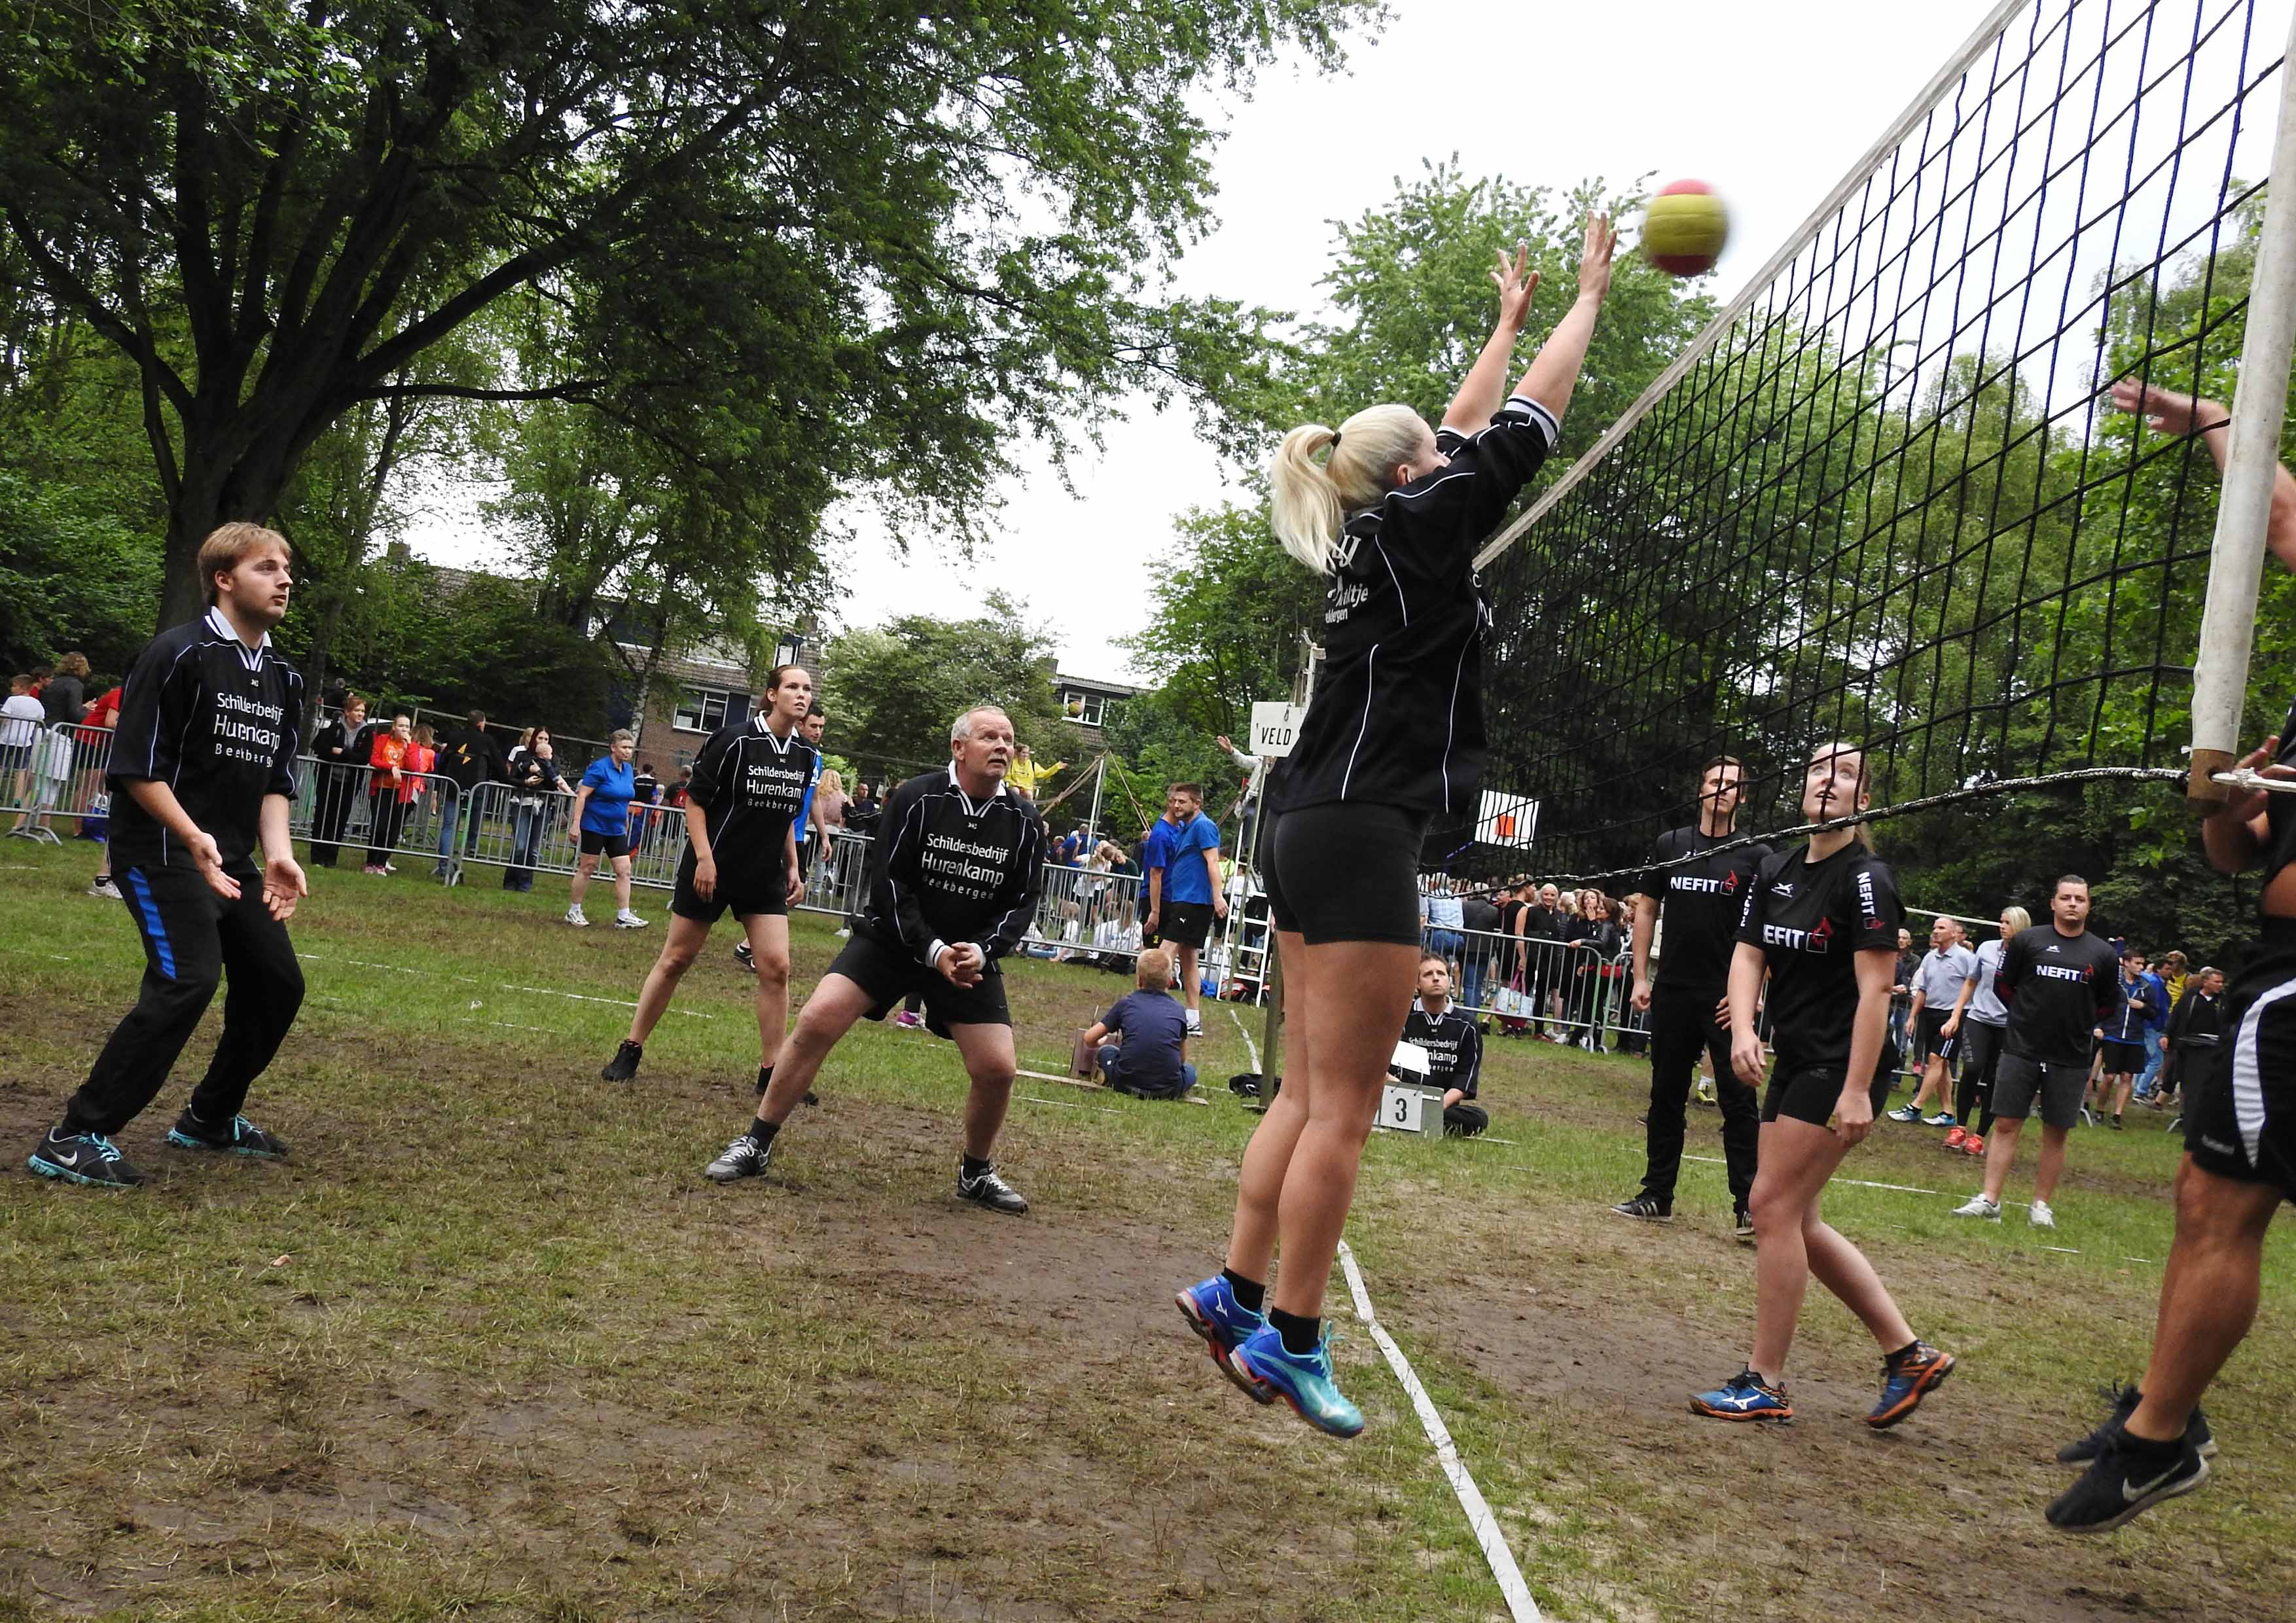 2017-06-29_BB_Straatvolleybal (26)